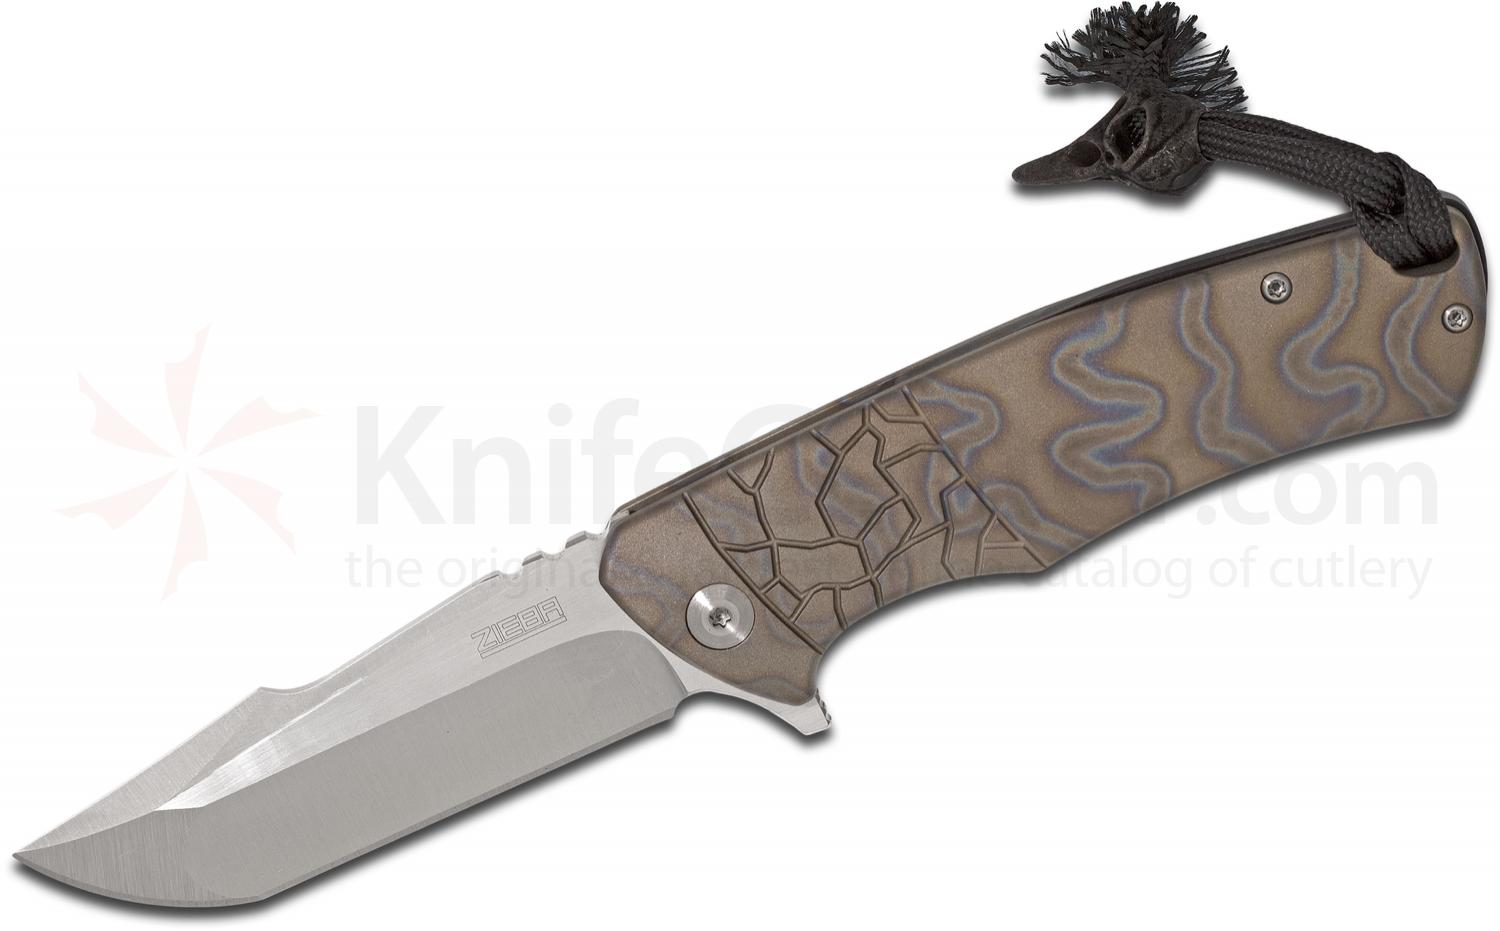 Michael Zieba Custom S4  inchAngry Bird inch Flipper 3.625 inch AEB-L Compound Tanto Blade, Flamed Titanium Handles, KnifeCenter Exclusive